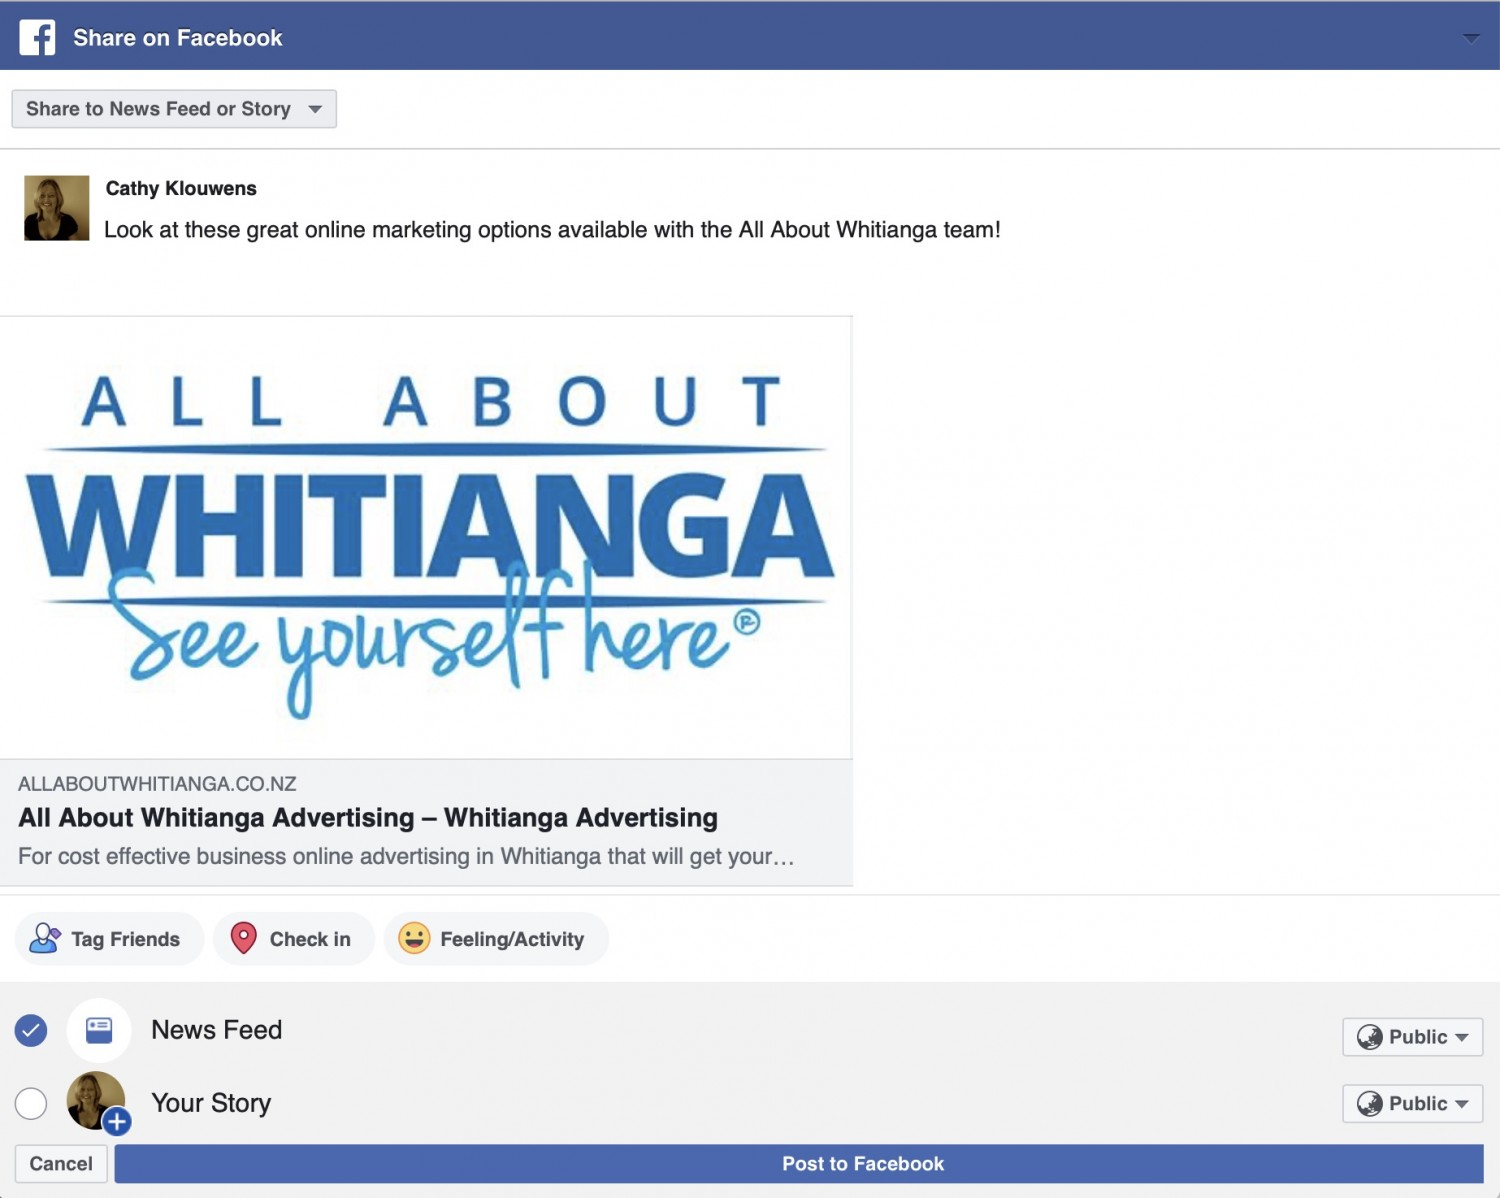 Screenshot from All About Whitianga website